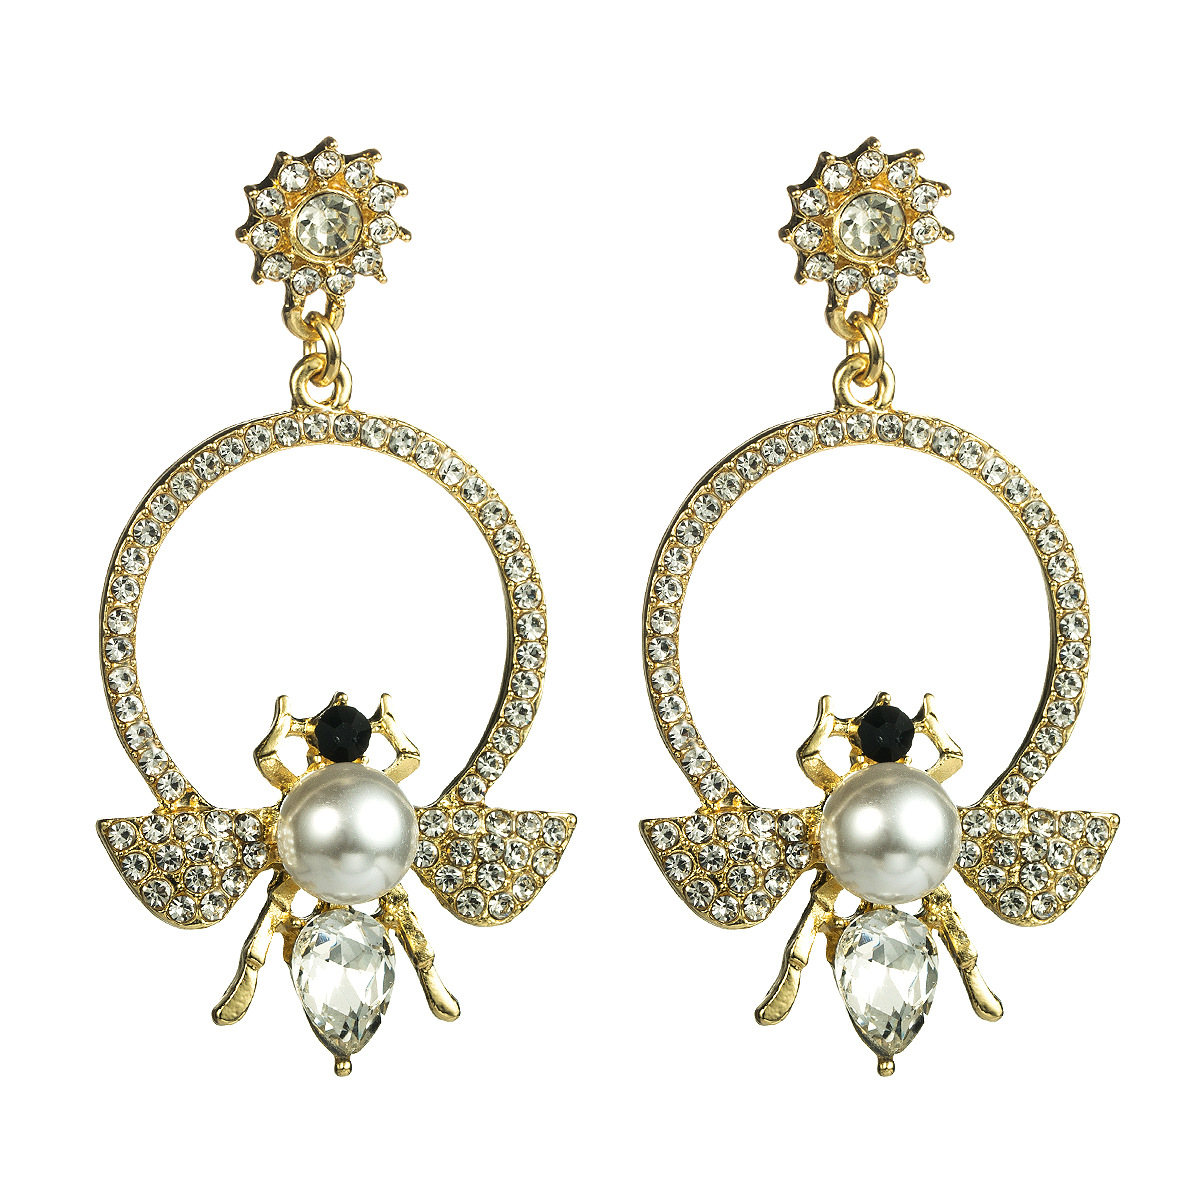 Fashion Alloy Rhinestone Bees with Pearl Earrings NHJE155421